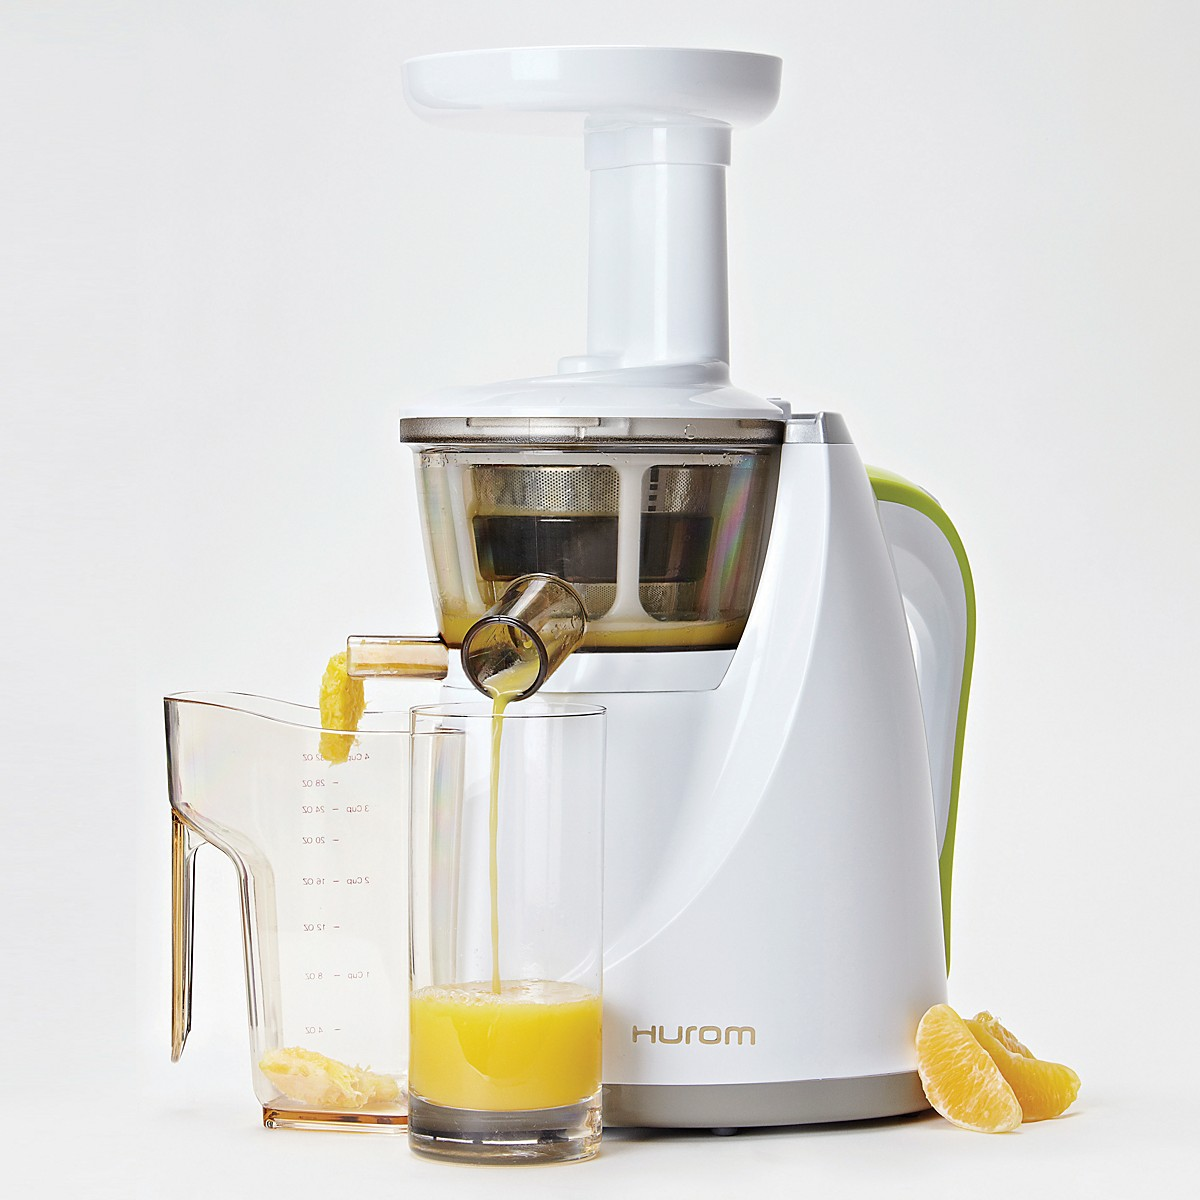 Juice Hurom Slow Juicer : The Wish List 2014 Our favourite kitchen appliances for chefs and avid home cooks